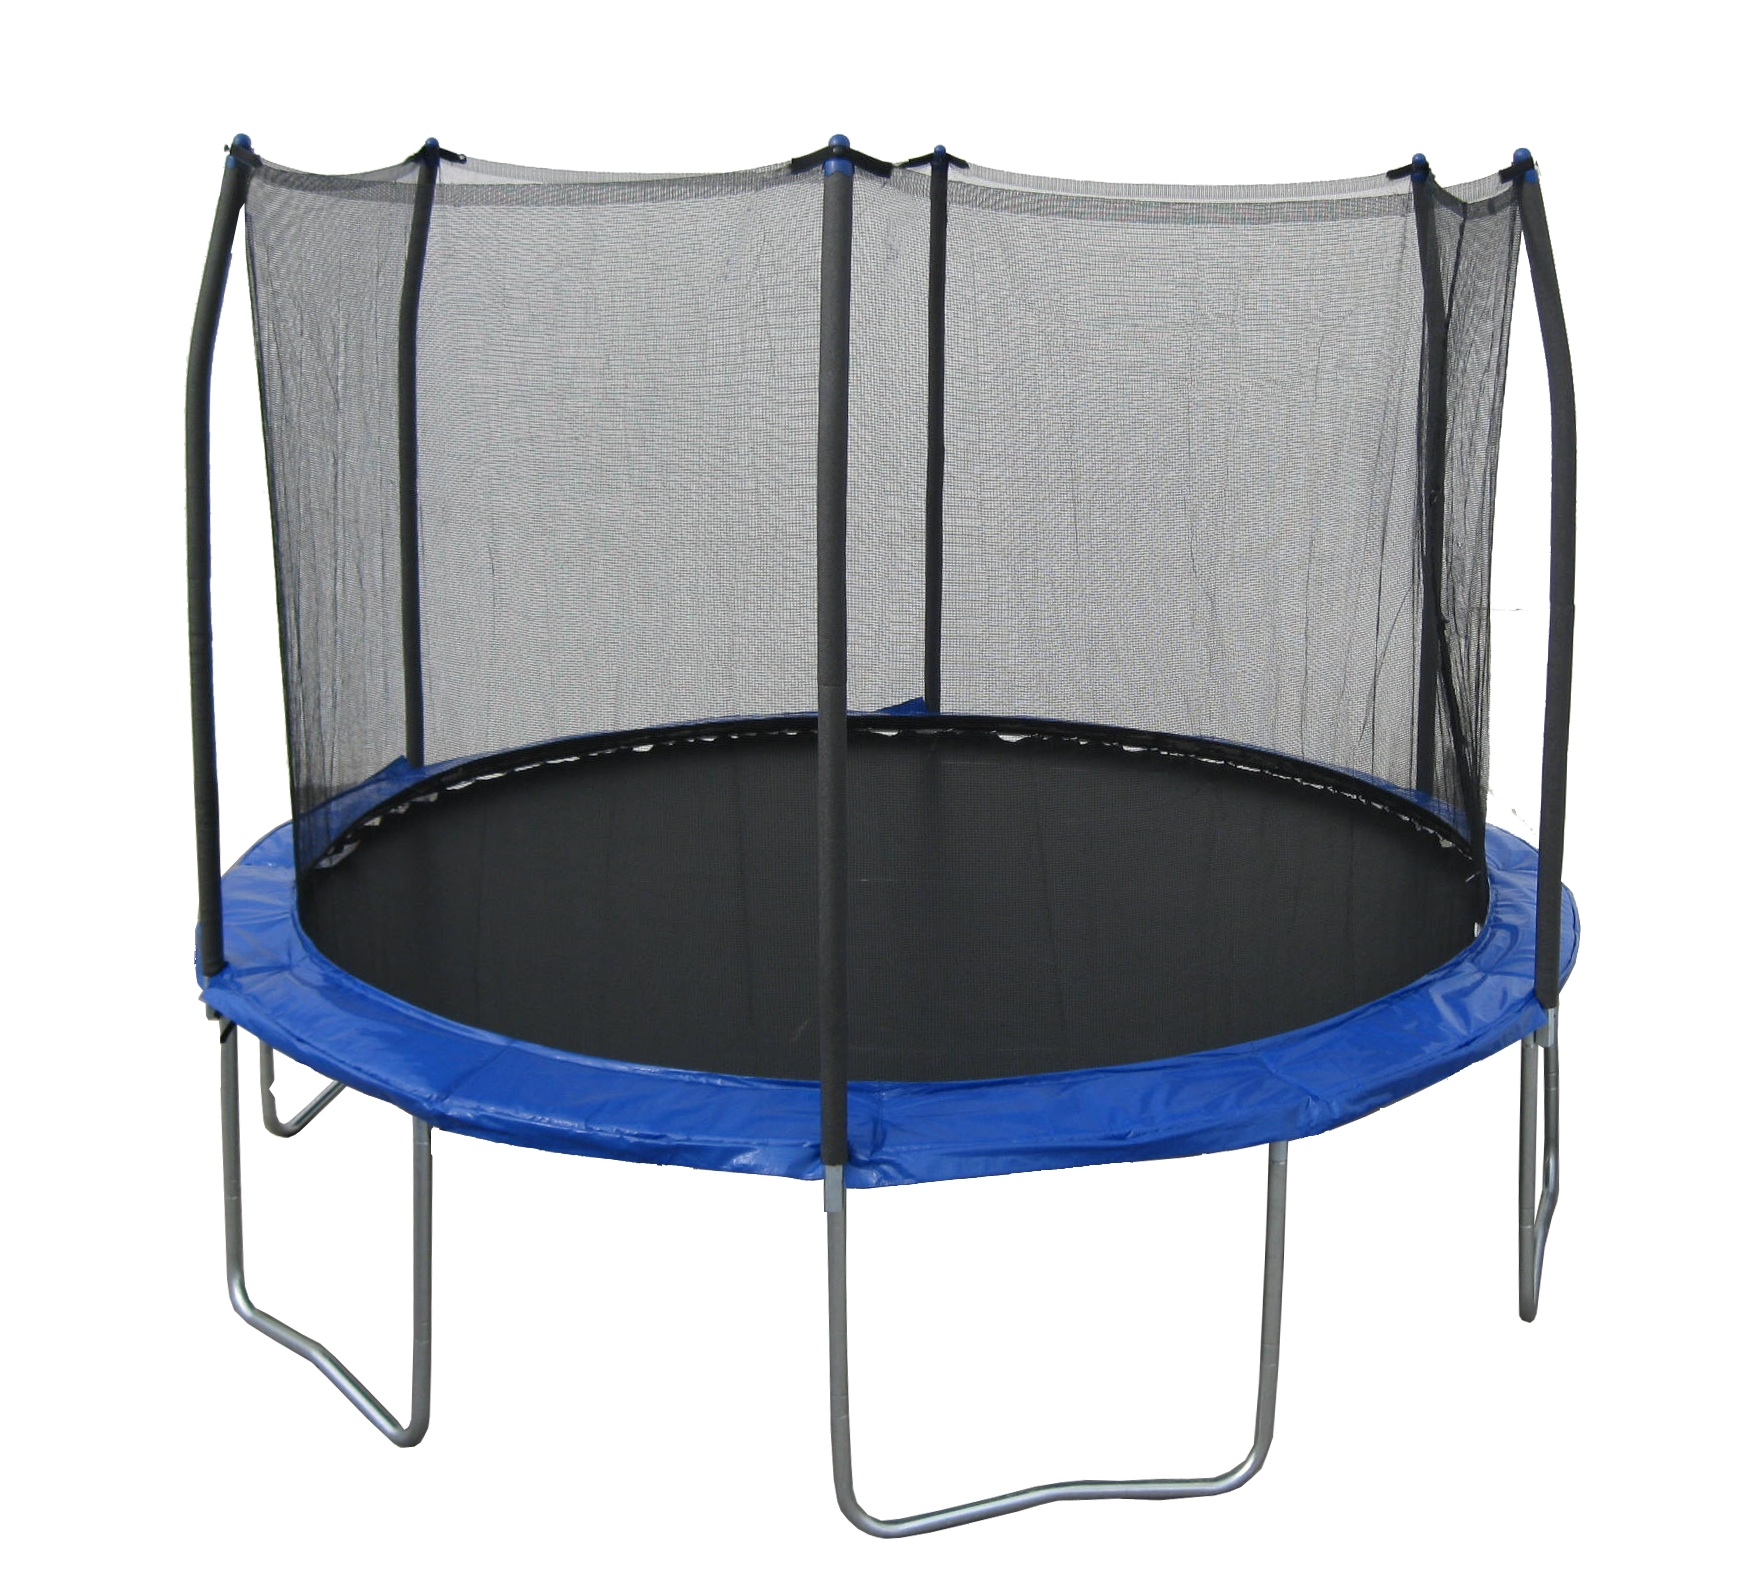 Trampoline Parts Canada: 2 Little Supeheroes2 Little Supeheroes